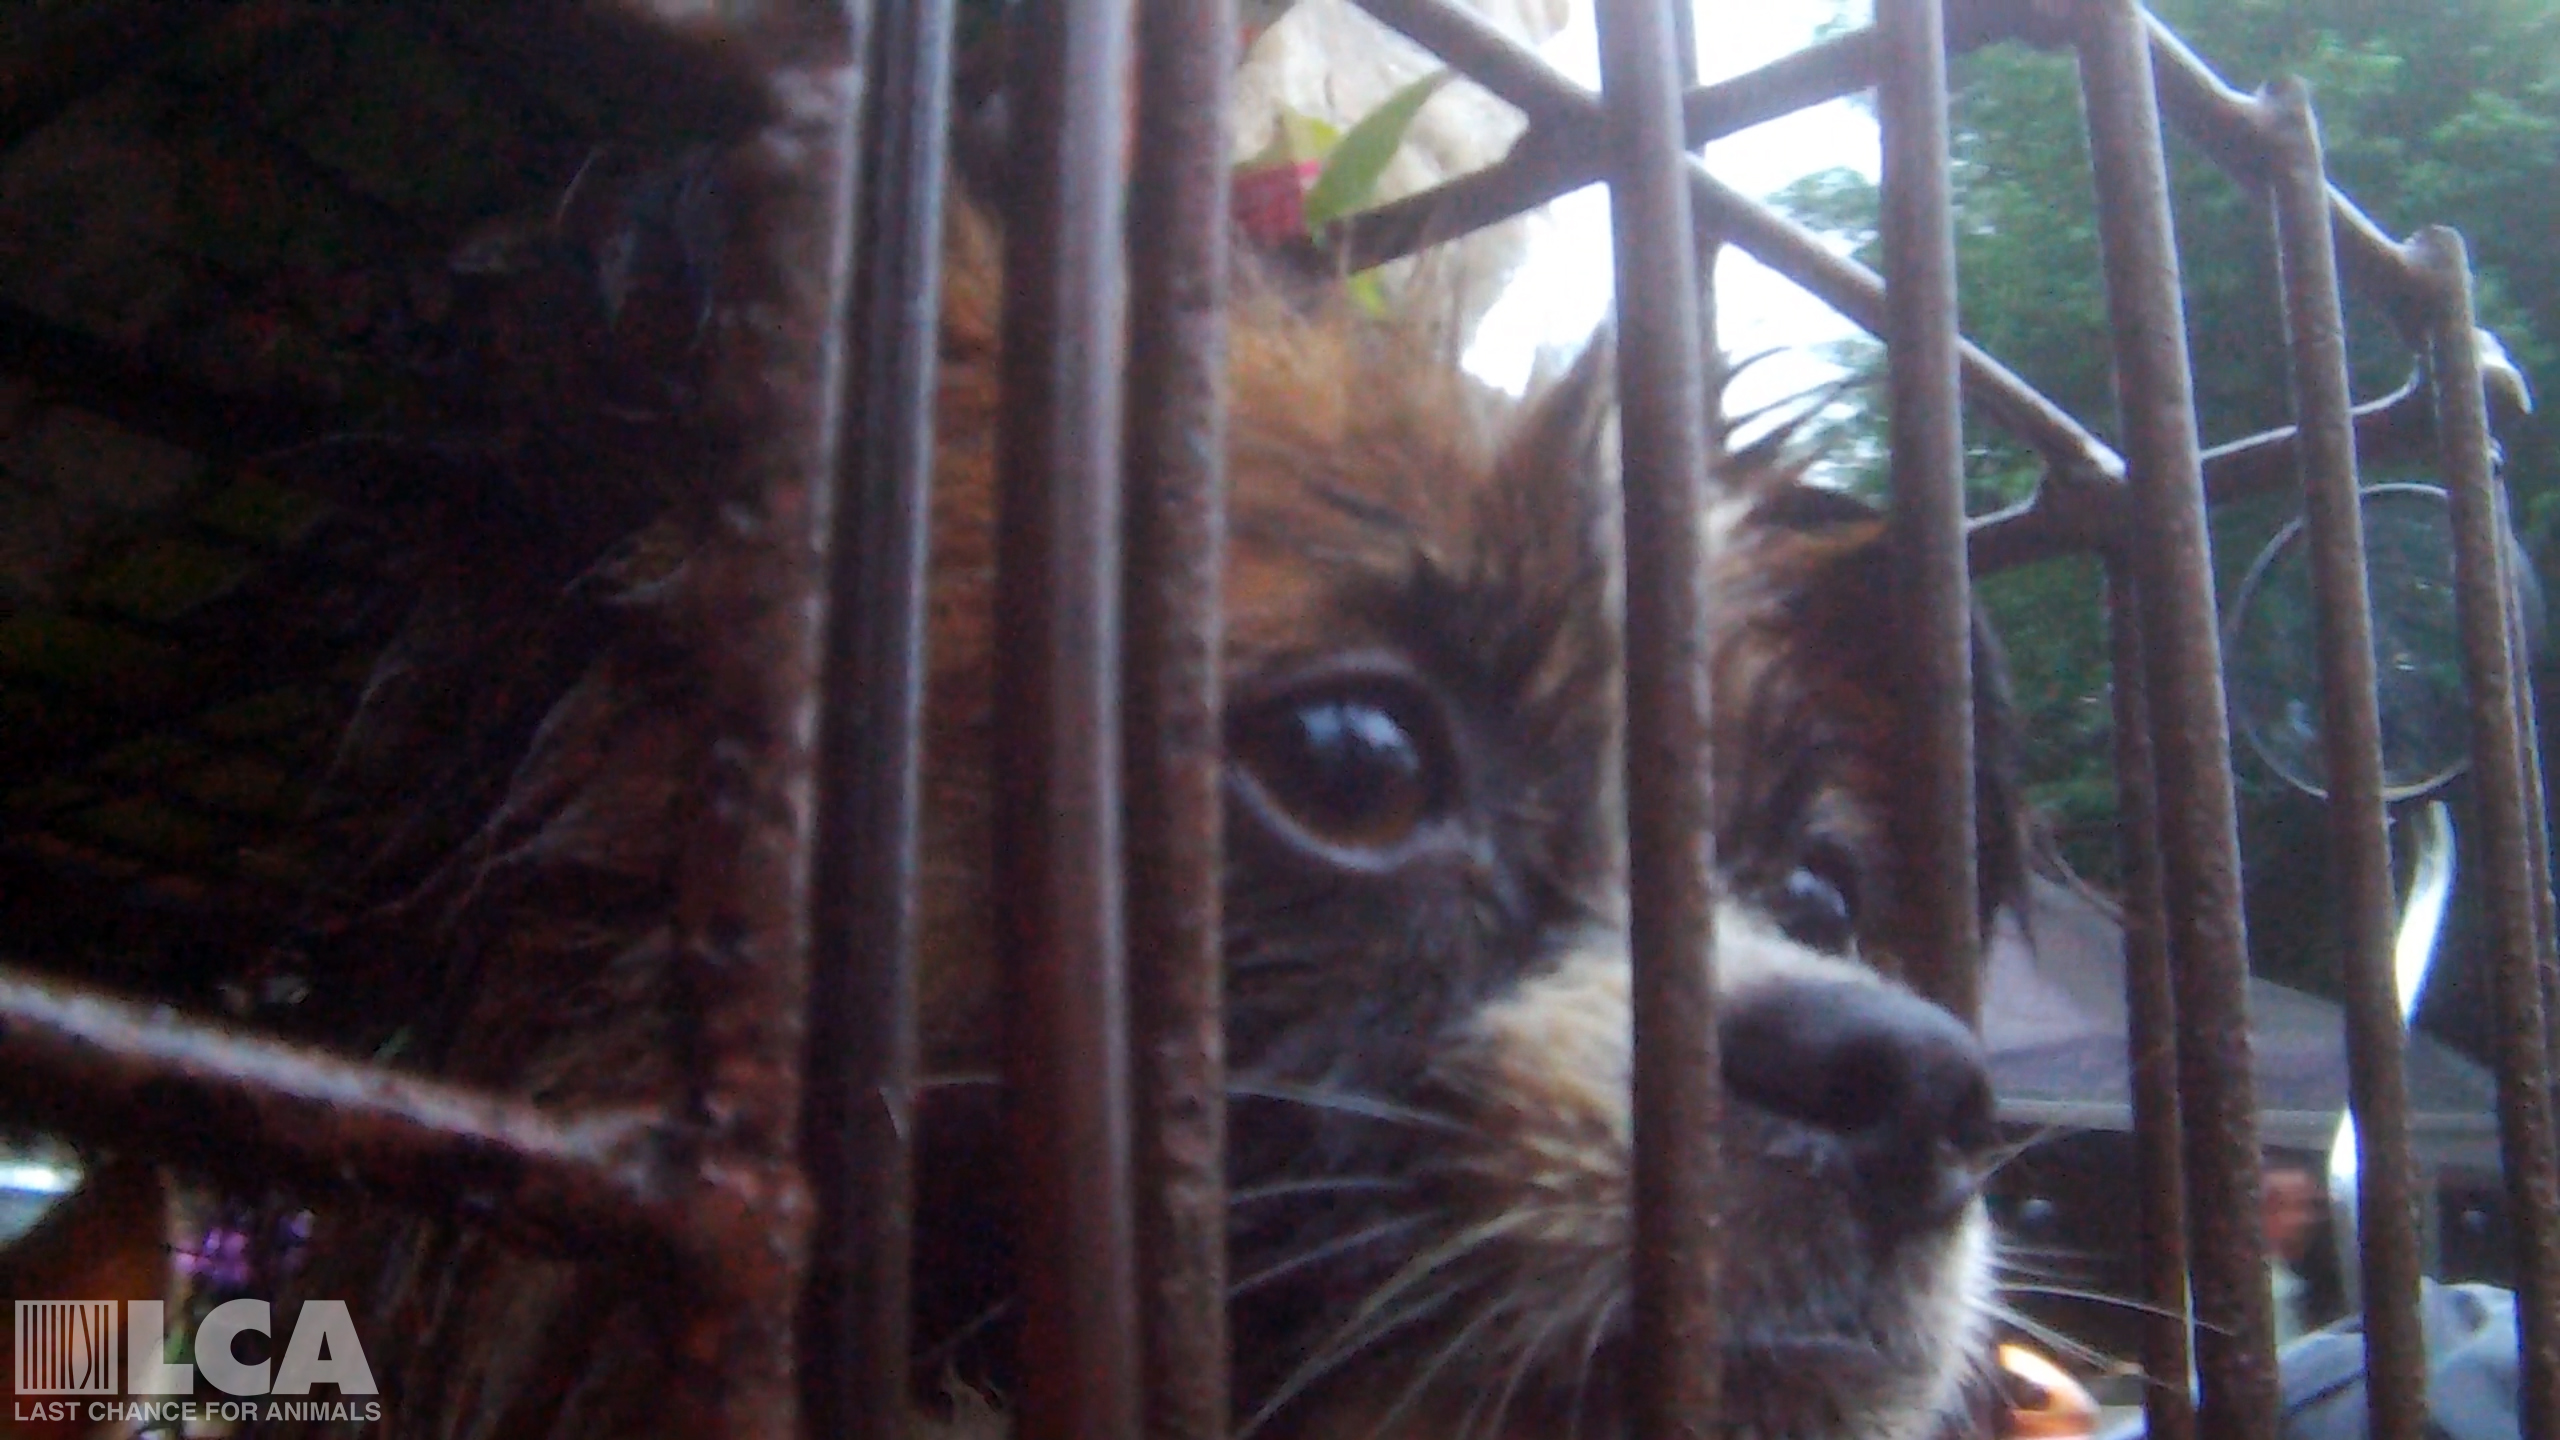 Sign Now to Stop Dog Meat in China! - photo#49